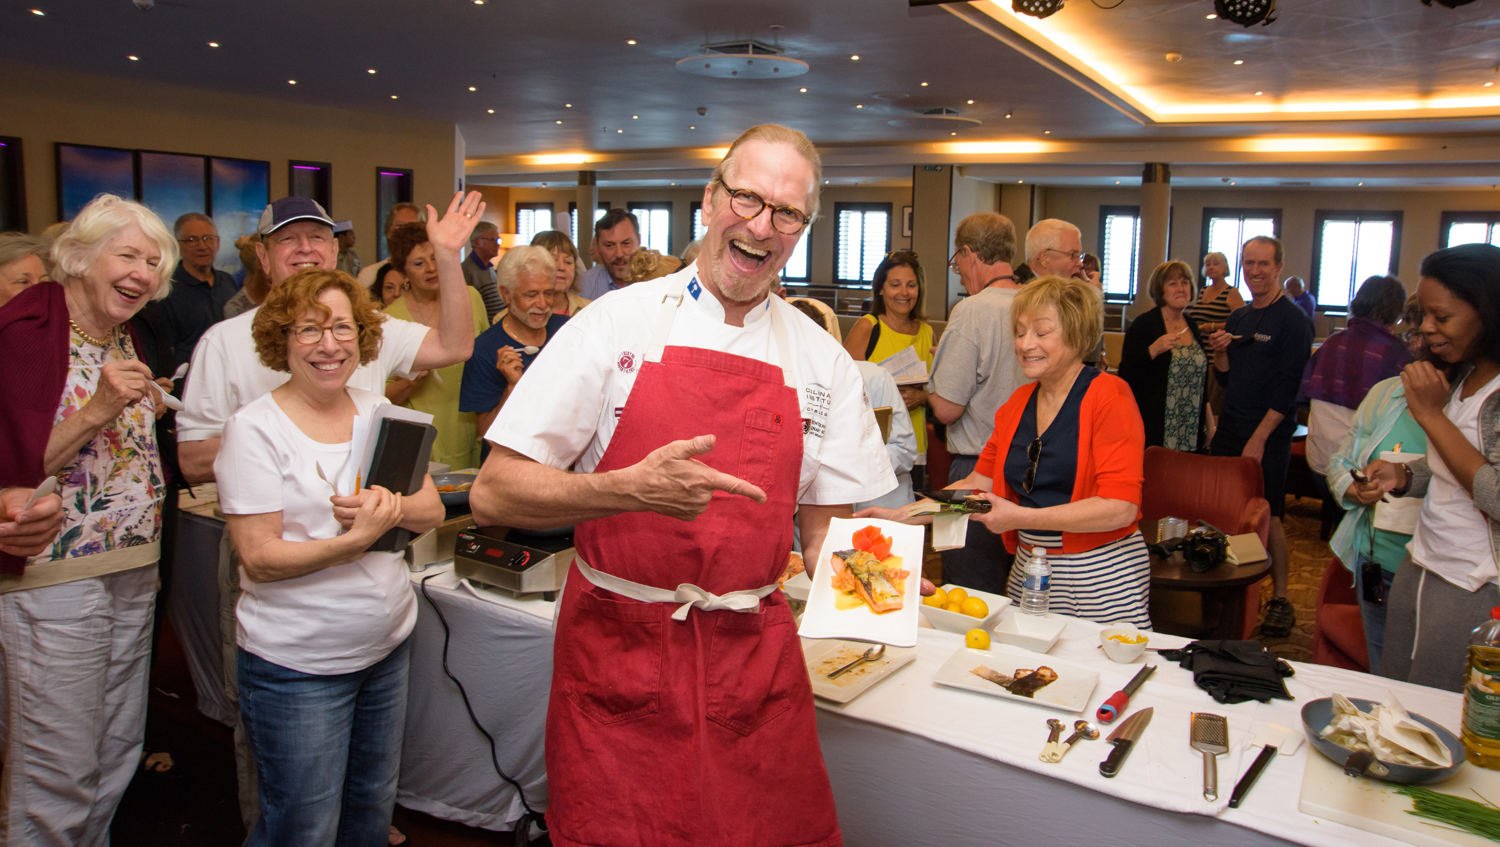 Unique James Beard Foundation programming will be available on Windstar sailings, including interactive culinary demonstrations by Windstar chefs.